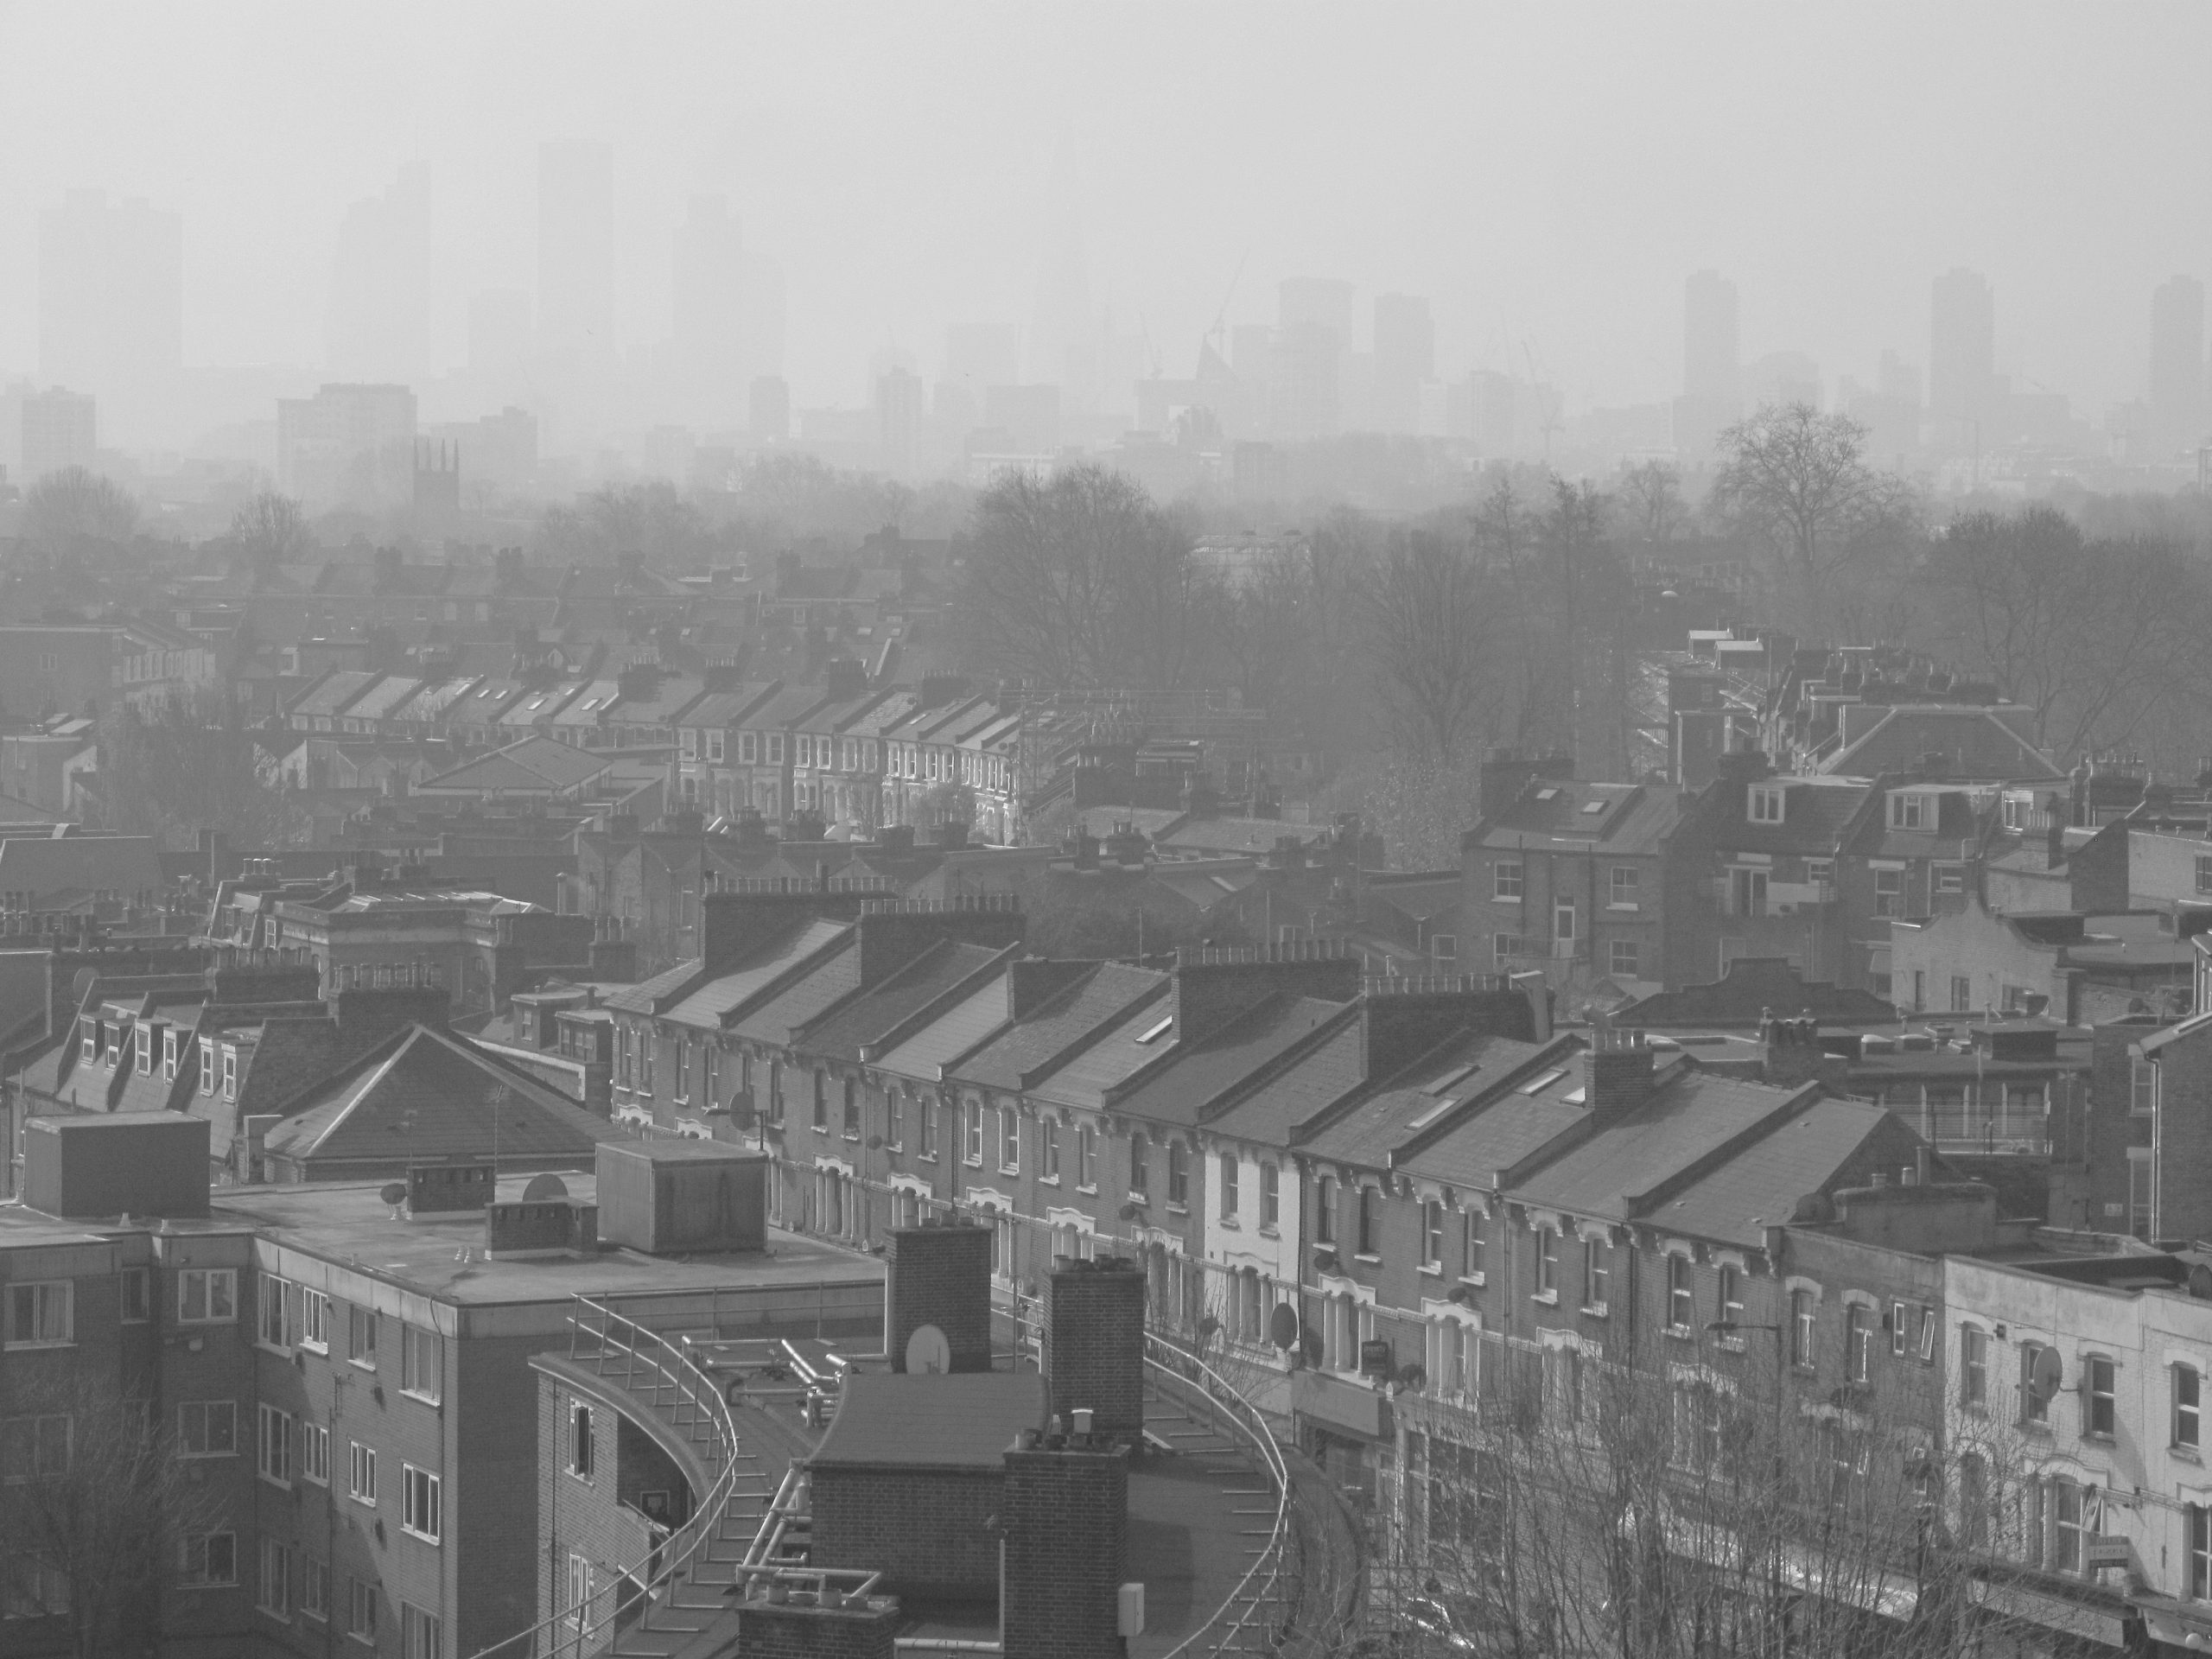 How LPG can save Londoners from air pollution